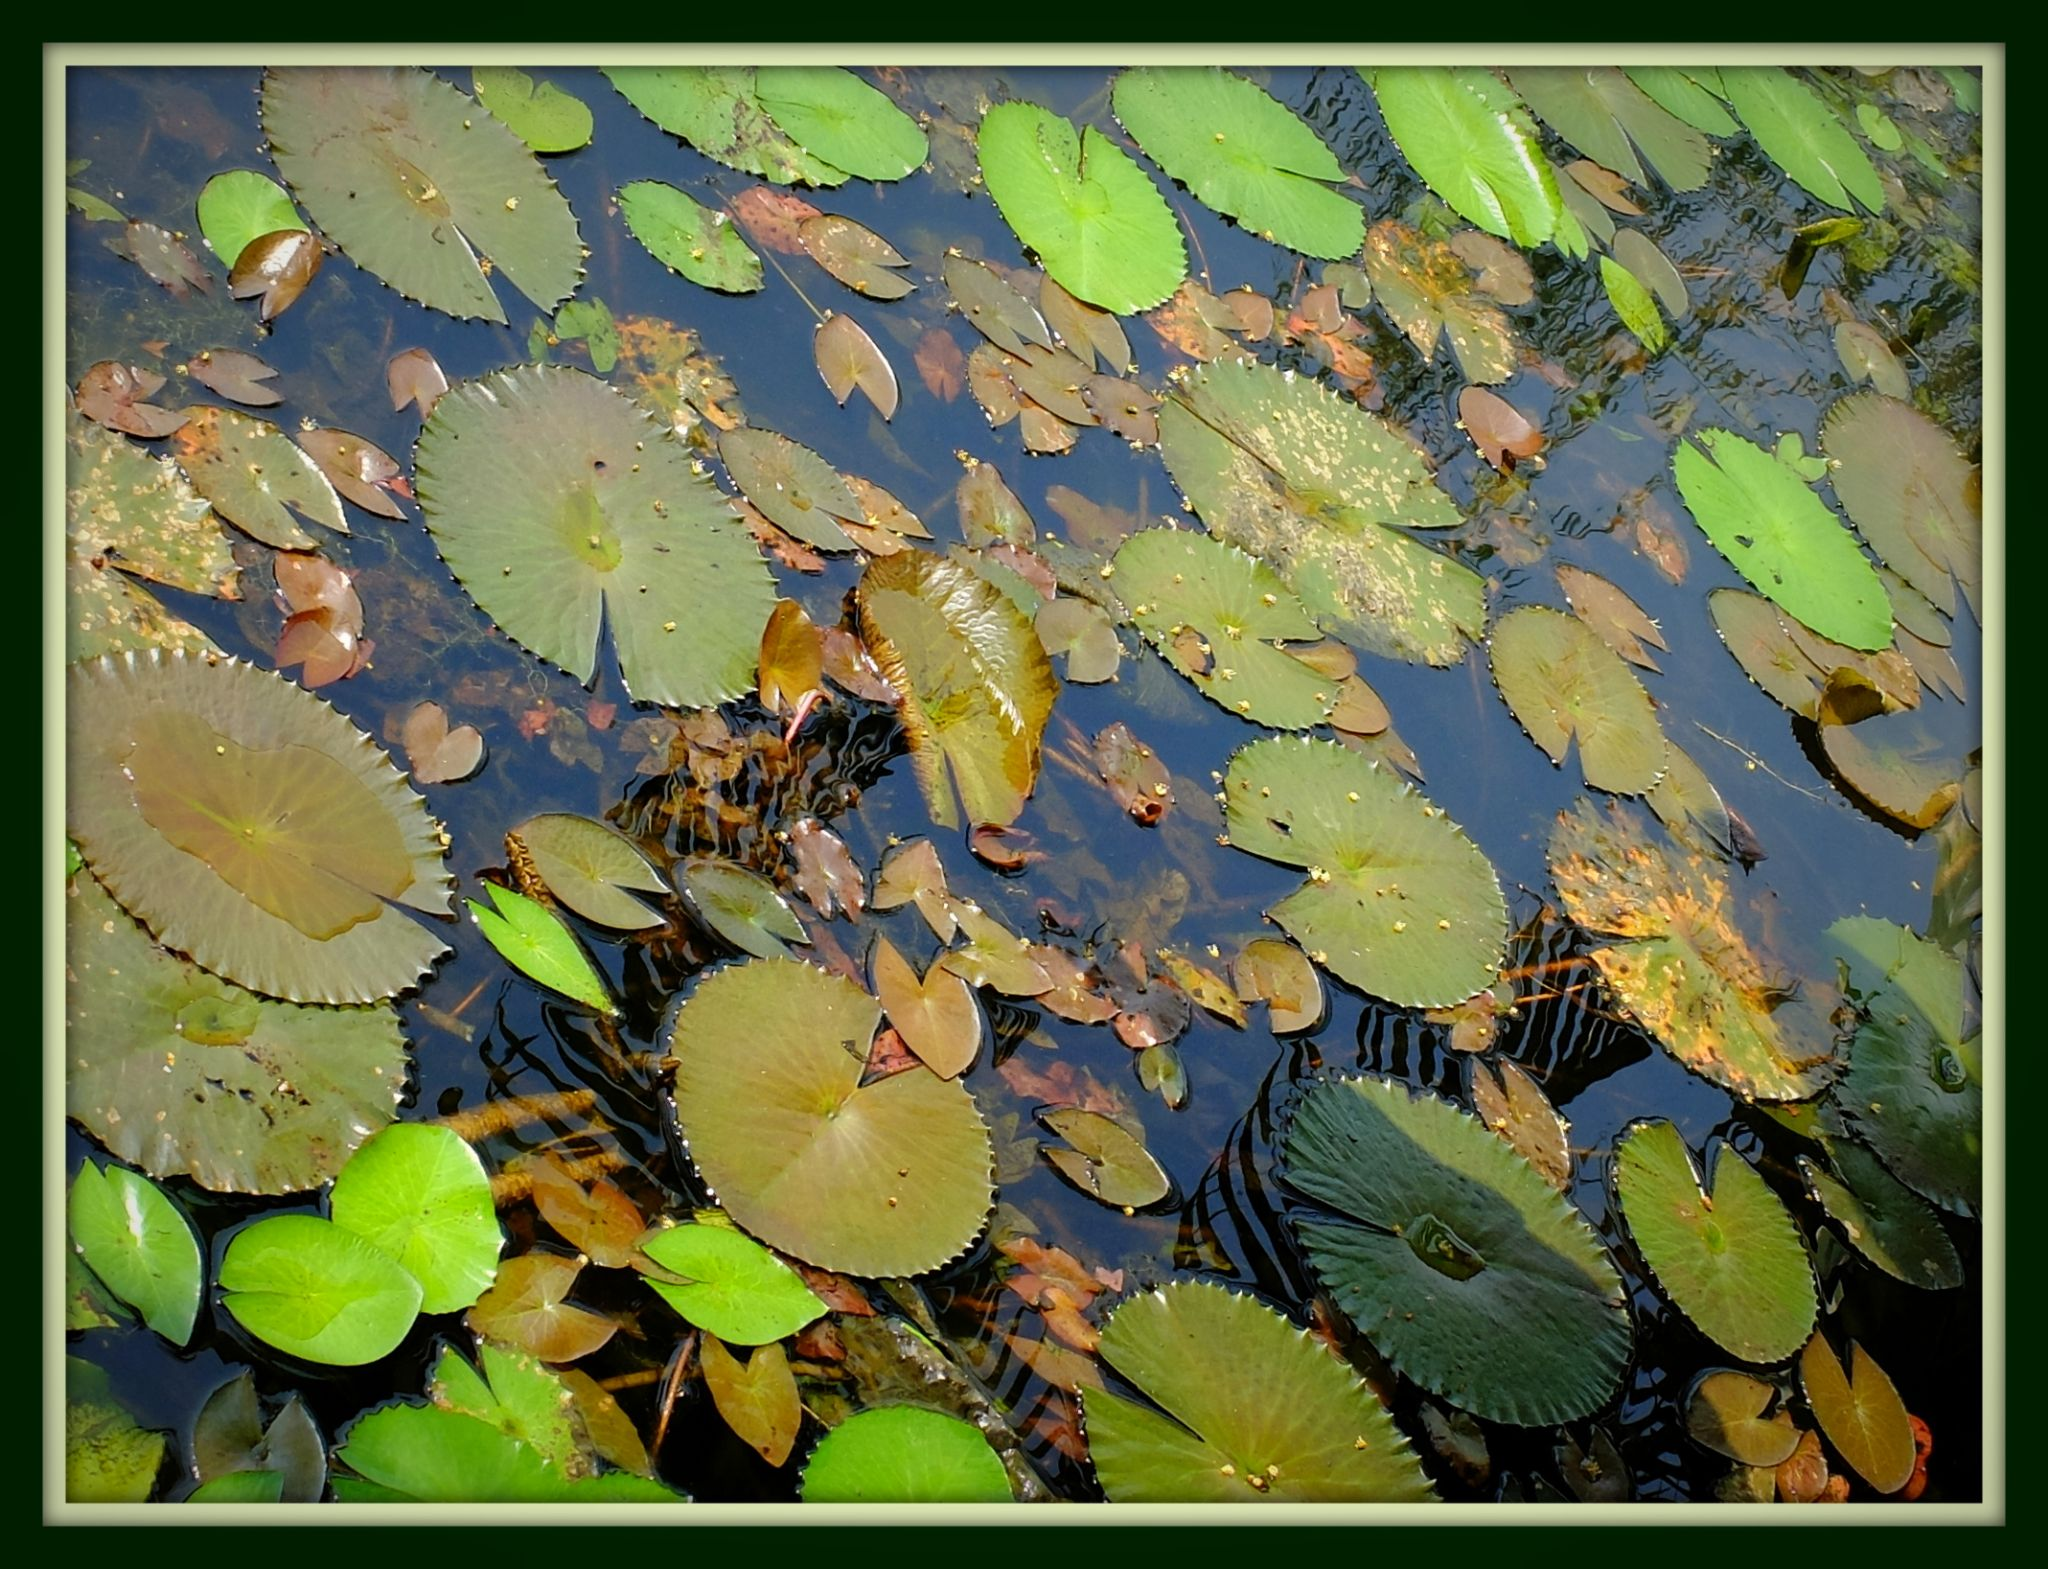 Lotus leaf from the pond by fragranceumlee